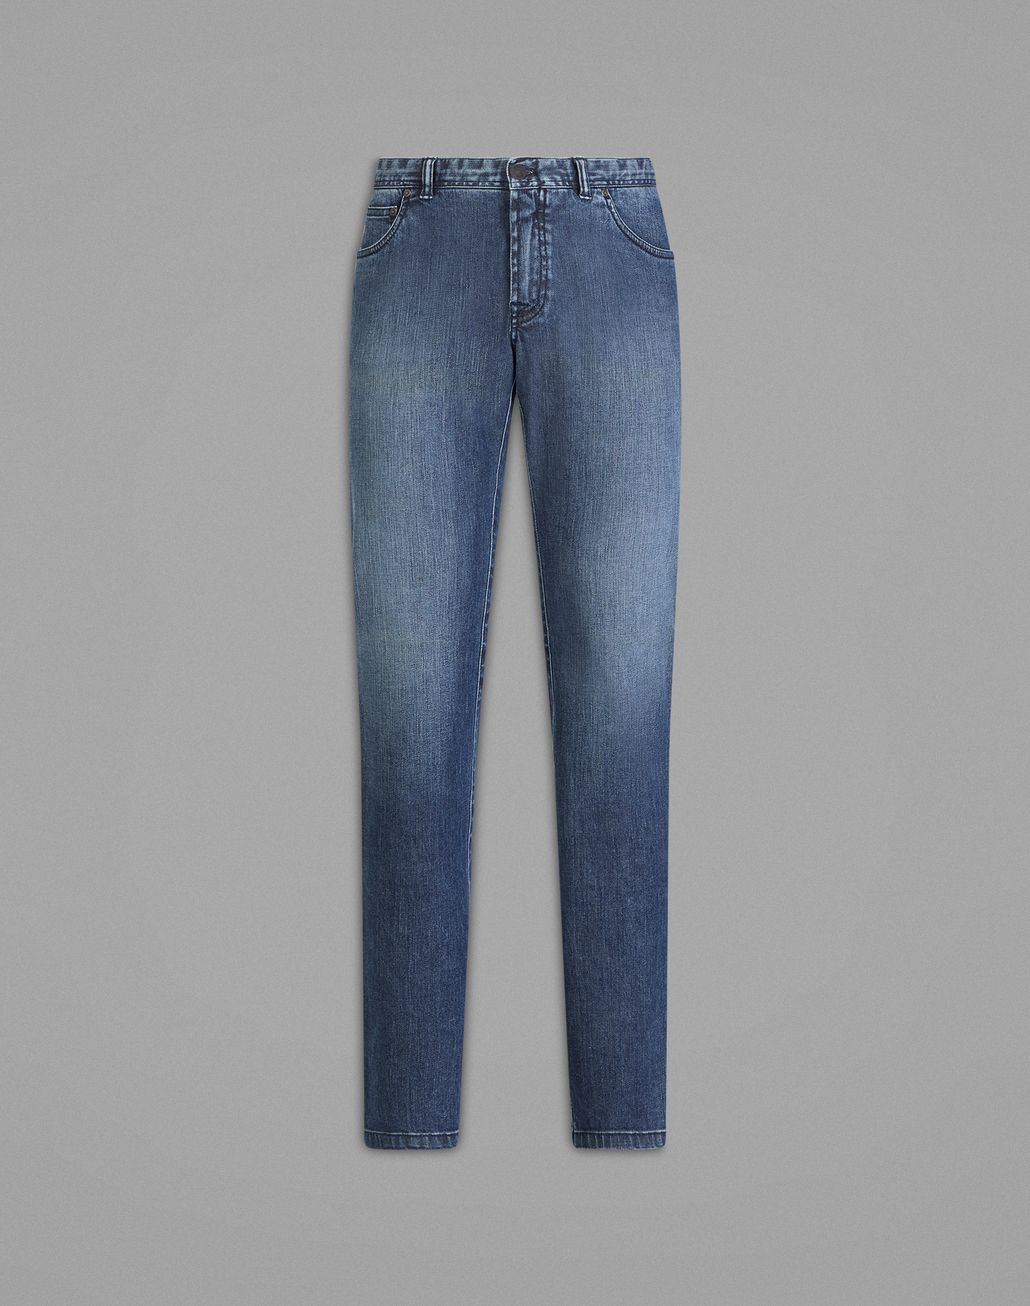 BRIONI Jeans in Marineblau Meribel Denim Herren f